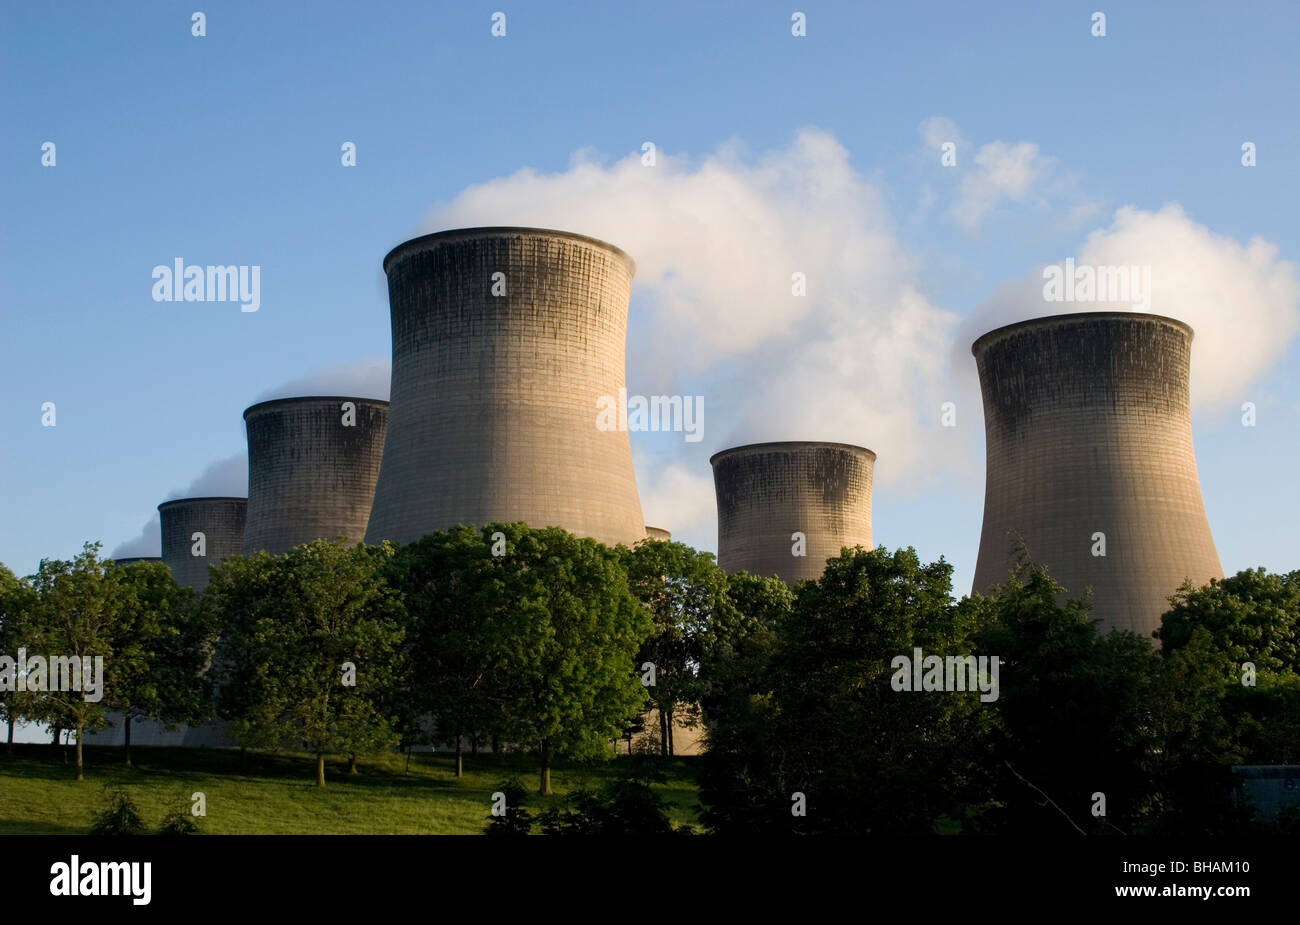 industrial chimneys billowing out smoke, northern England - Stock Image